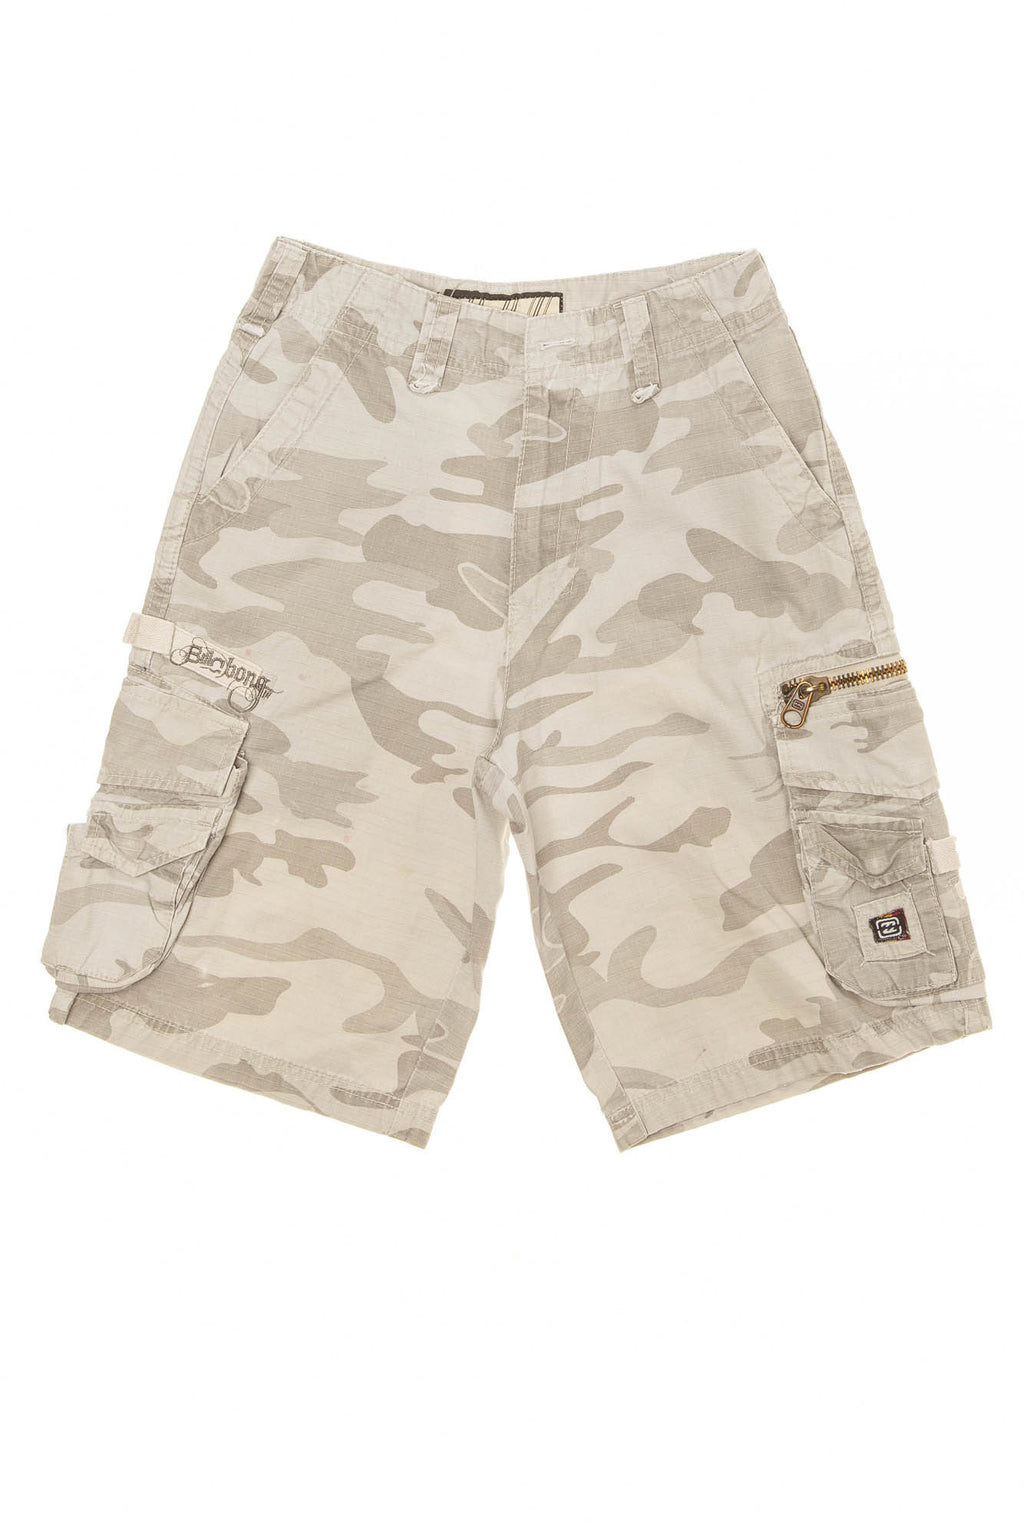 Billabong - Camo Cargo Shorts -  23